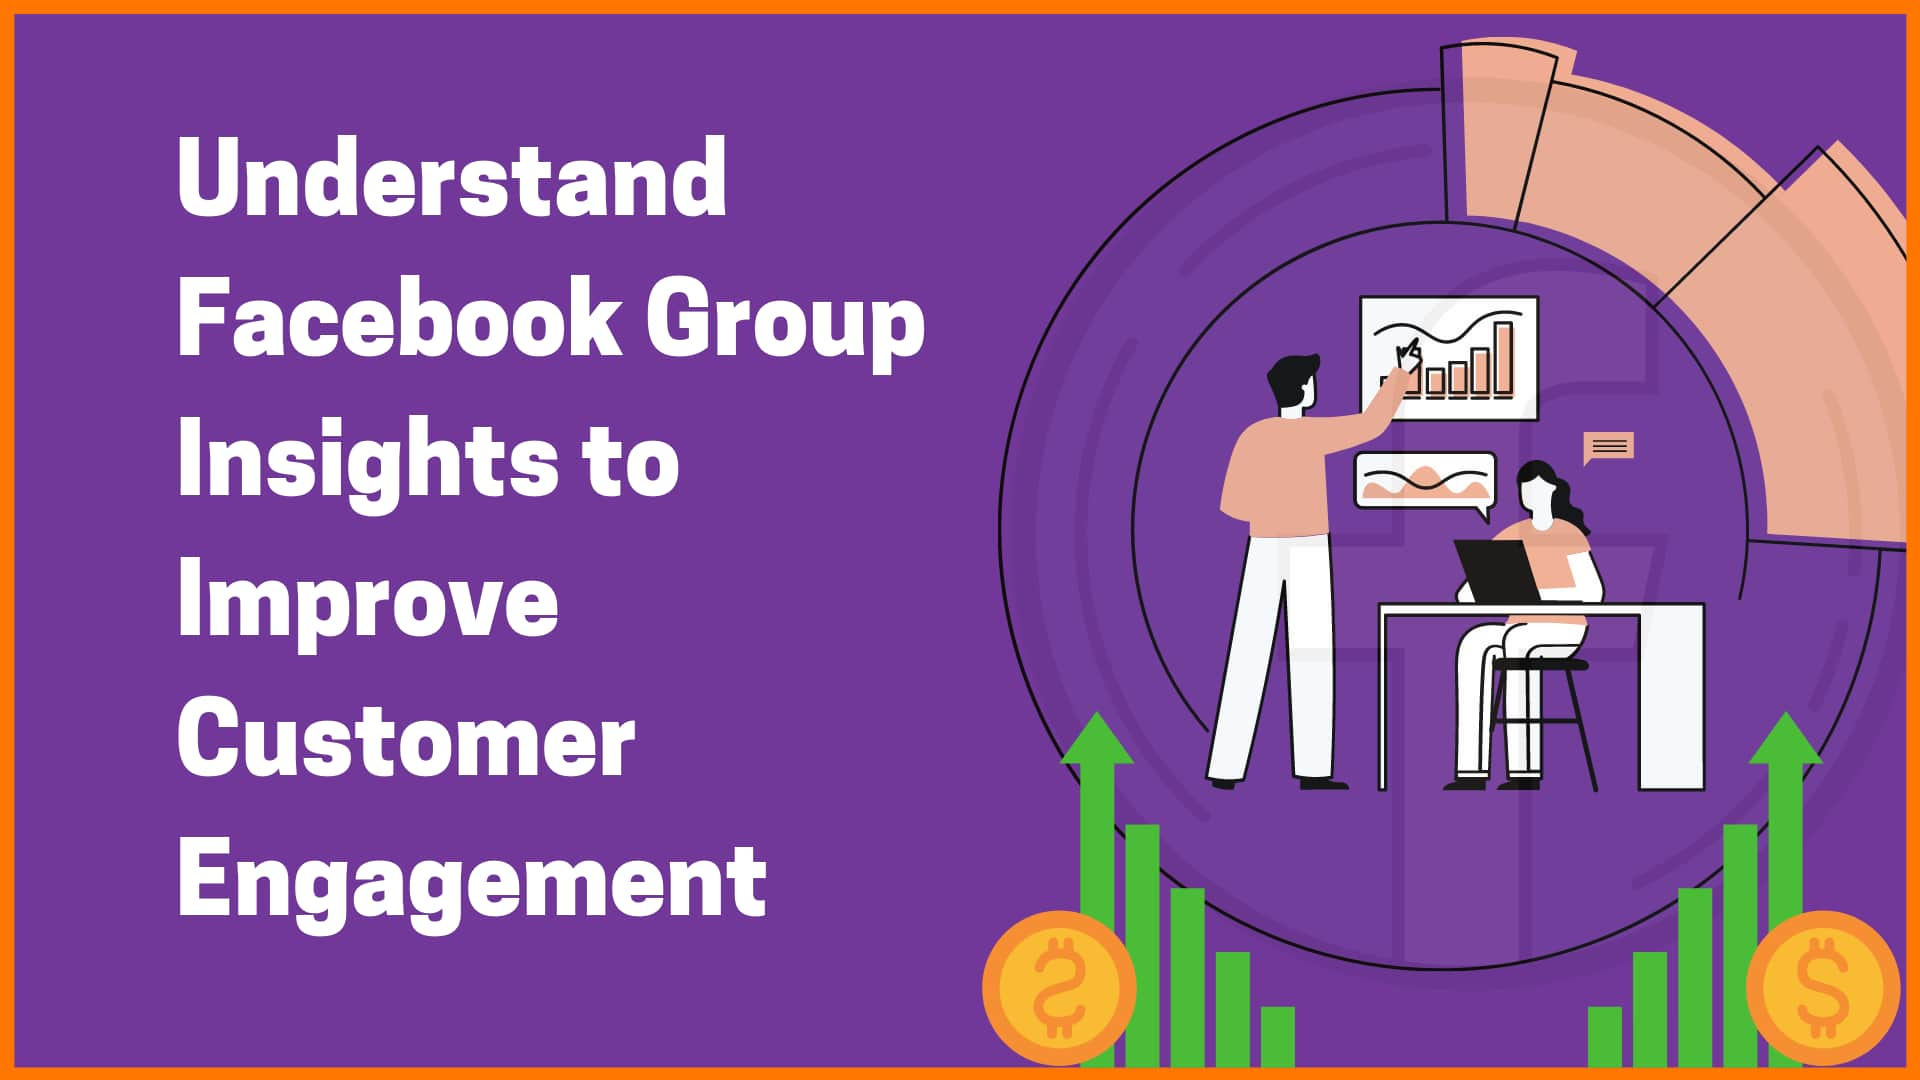 Understand Facebook Group Insights for Better Marketing